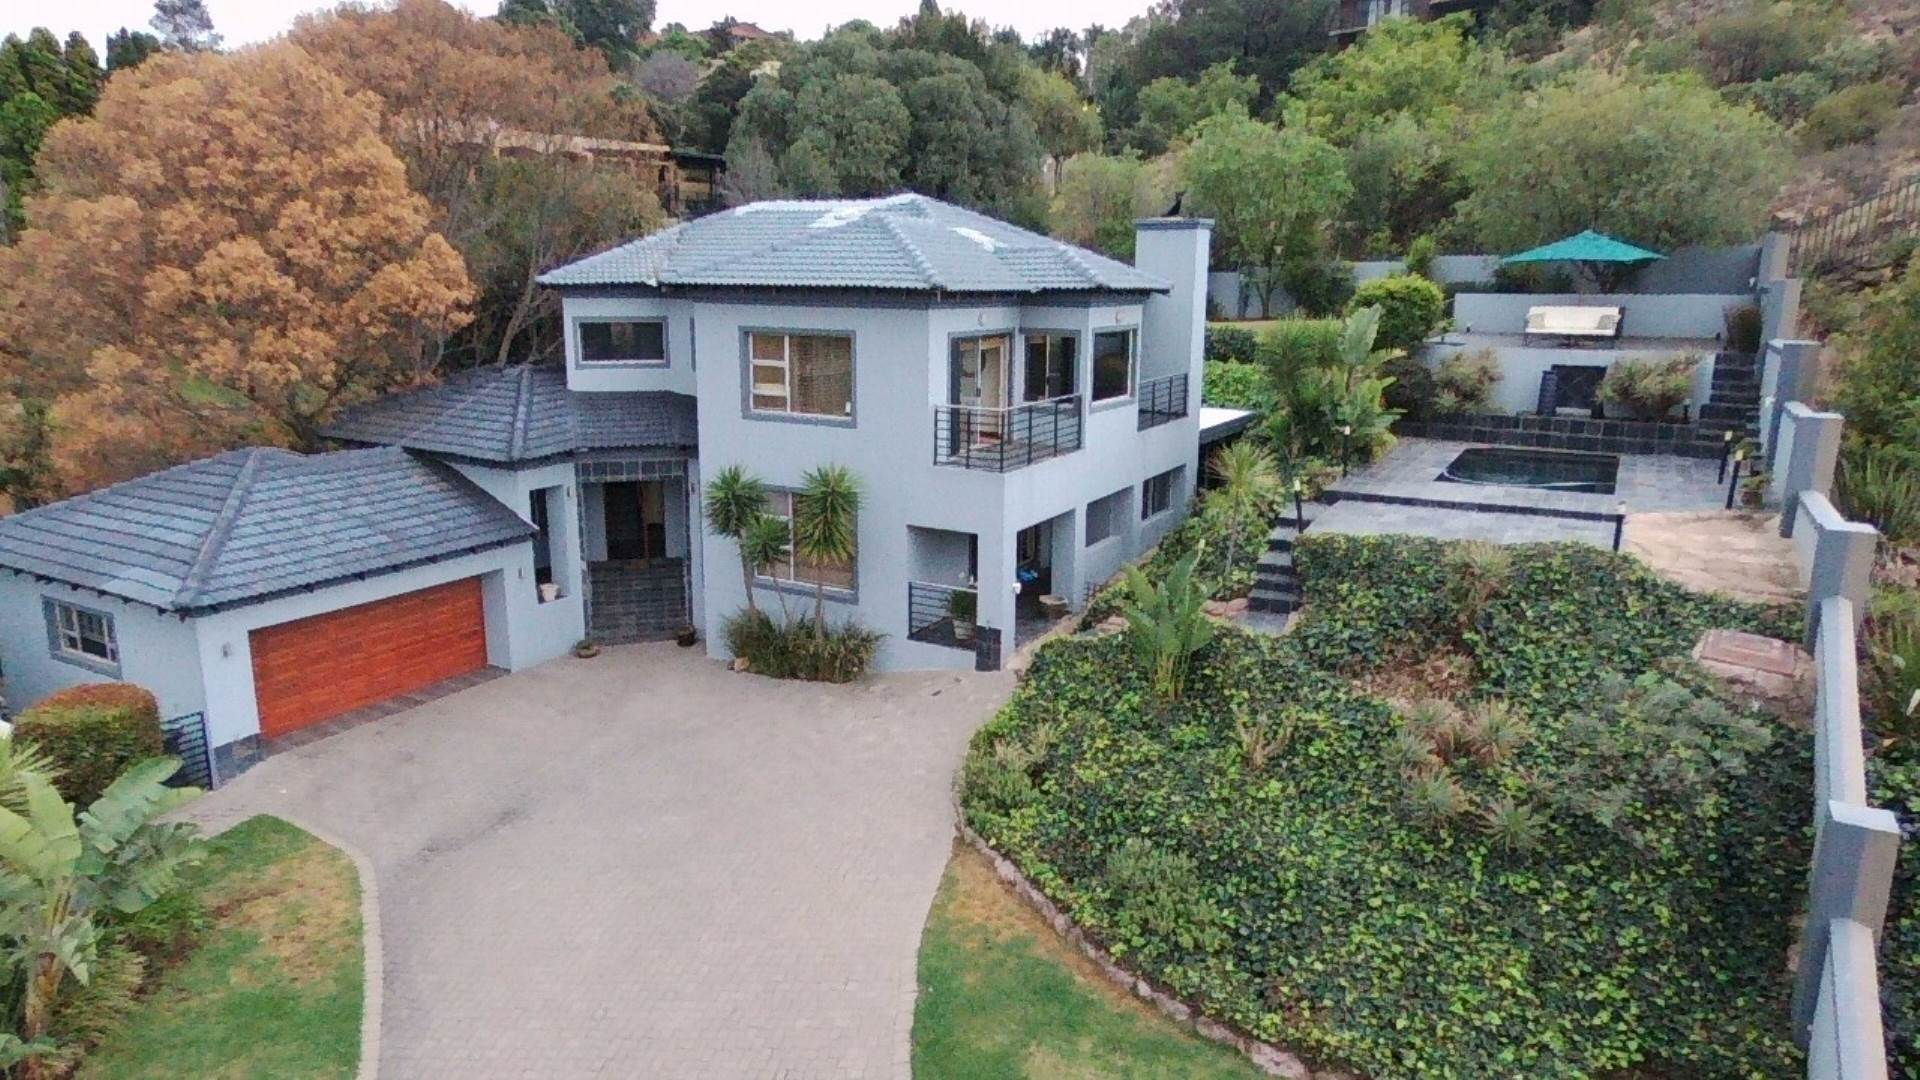 3 BedroomCluster For Sale In Constantia Kloof